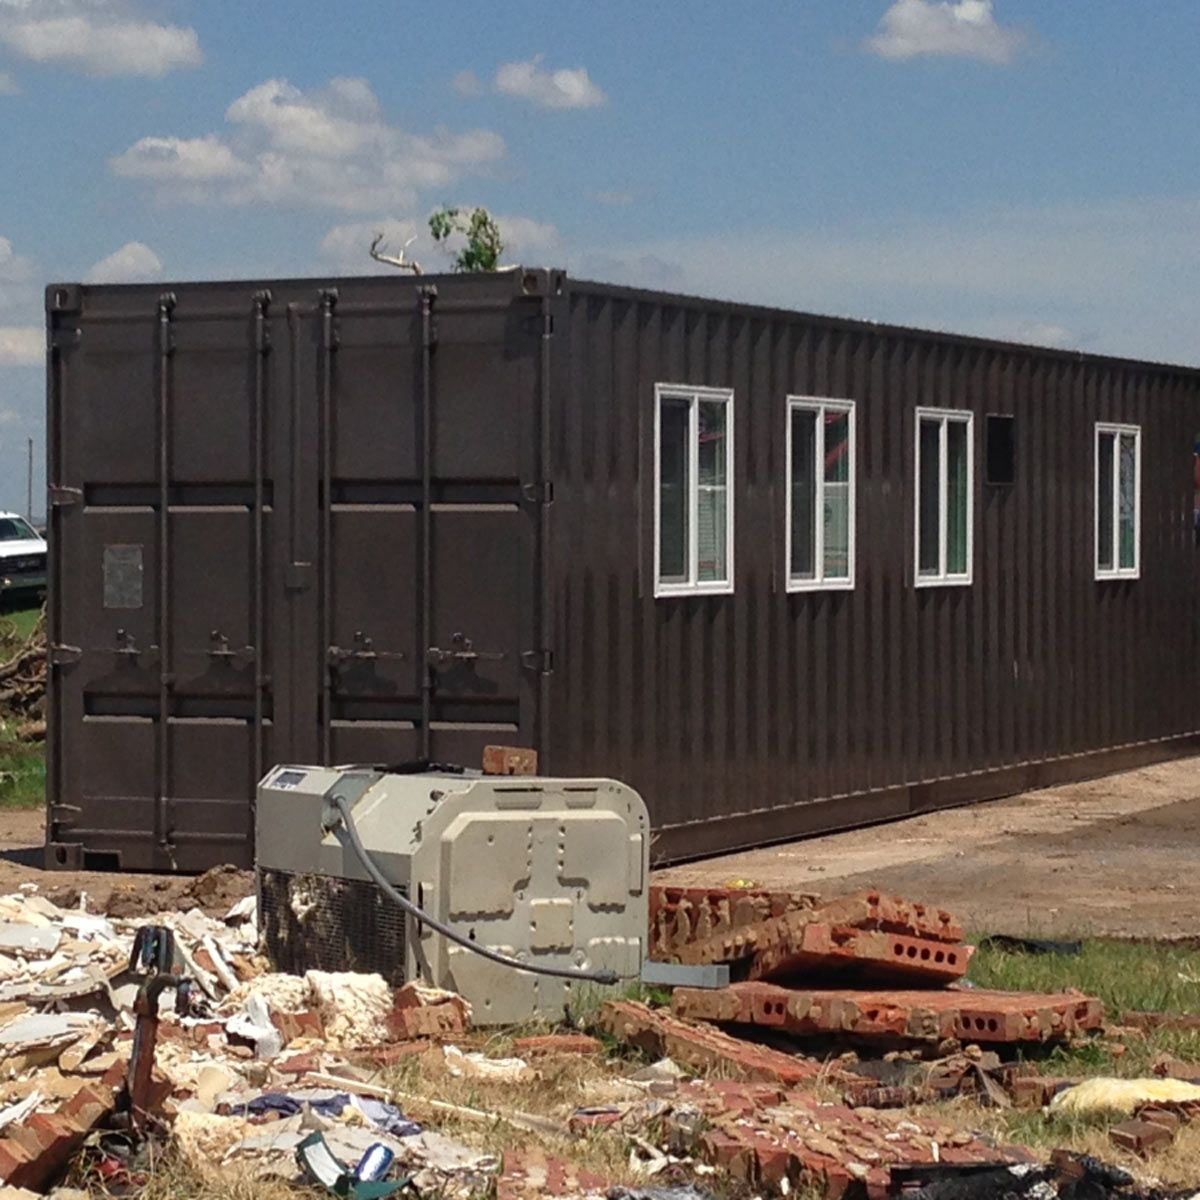 Amazon Now Sells Shipping Container Tiny Homes (With